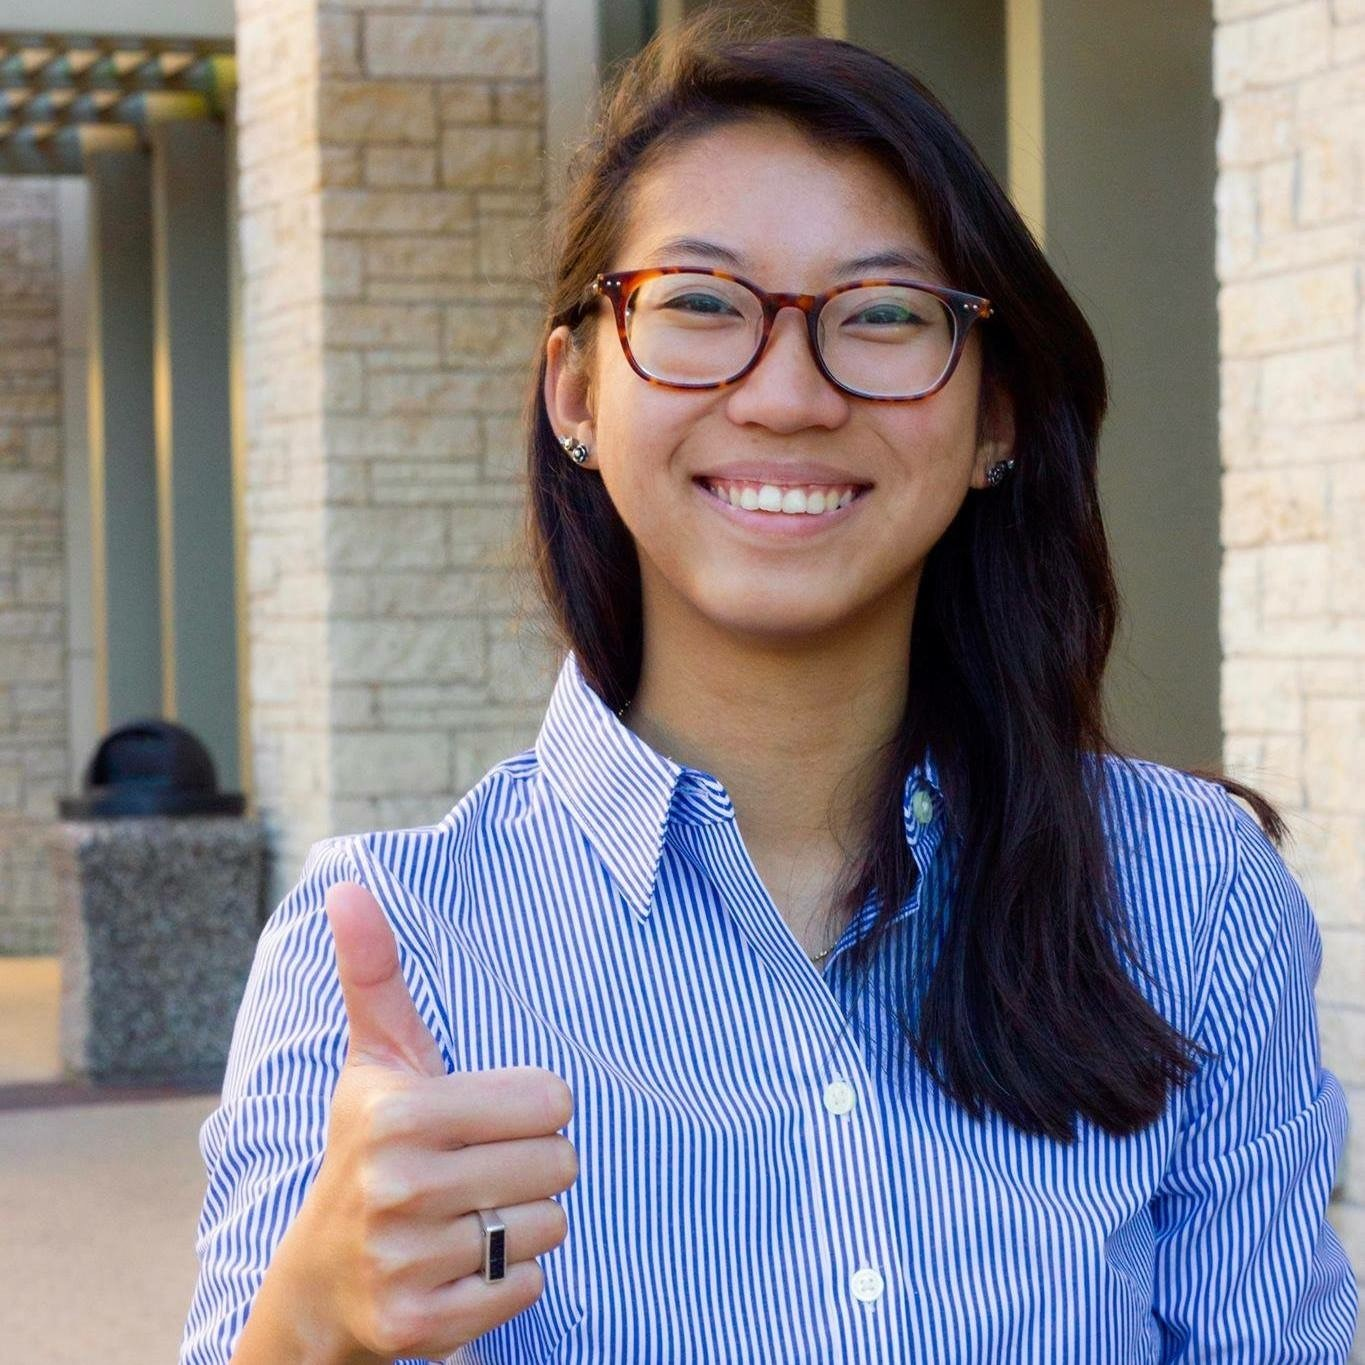 2dbde8f8fc5 DMS Student Spotlight - Department of Multicultural Services - Texas ...